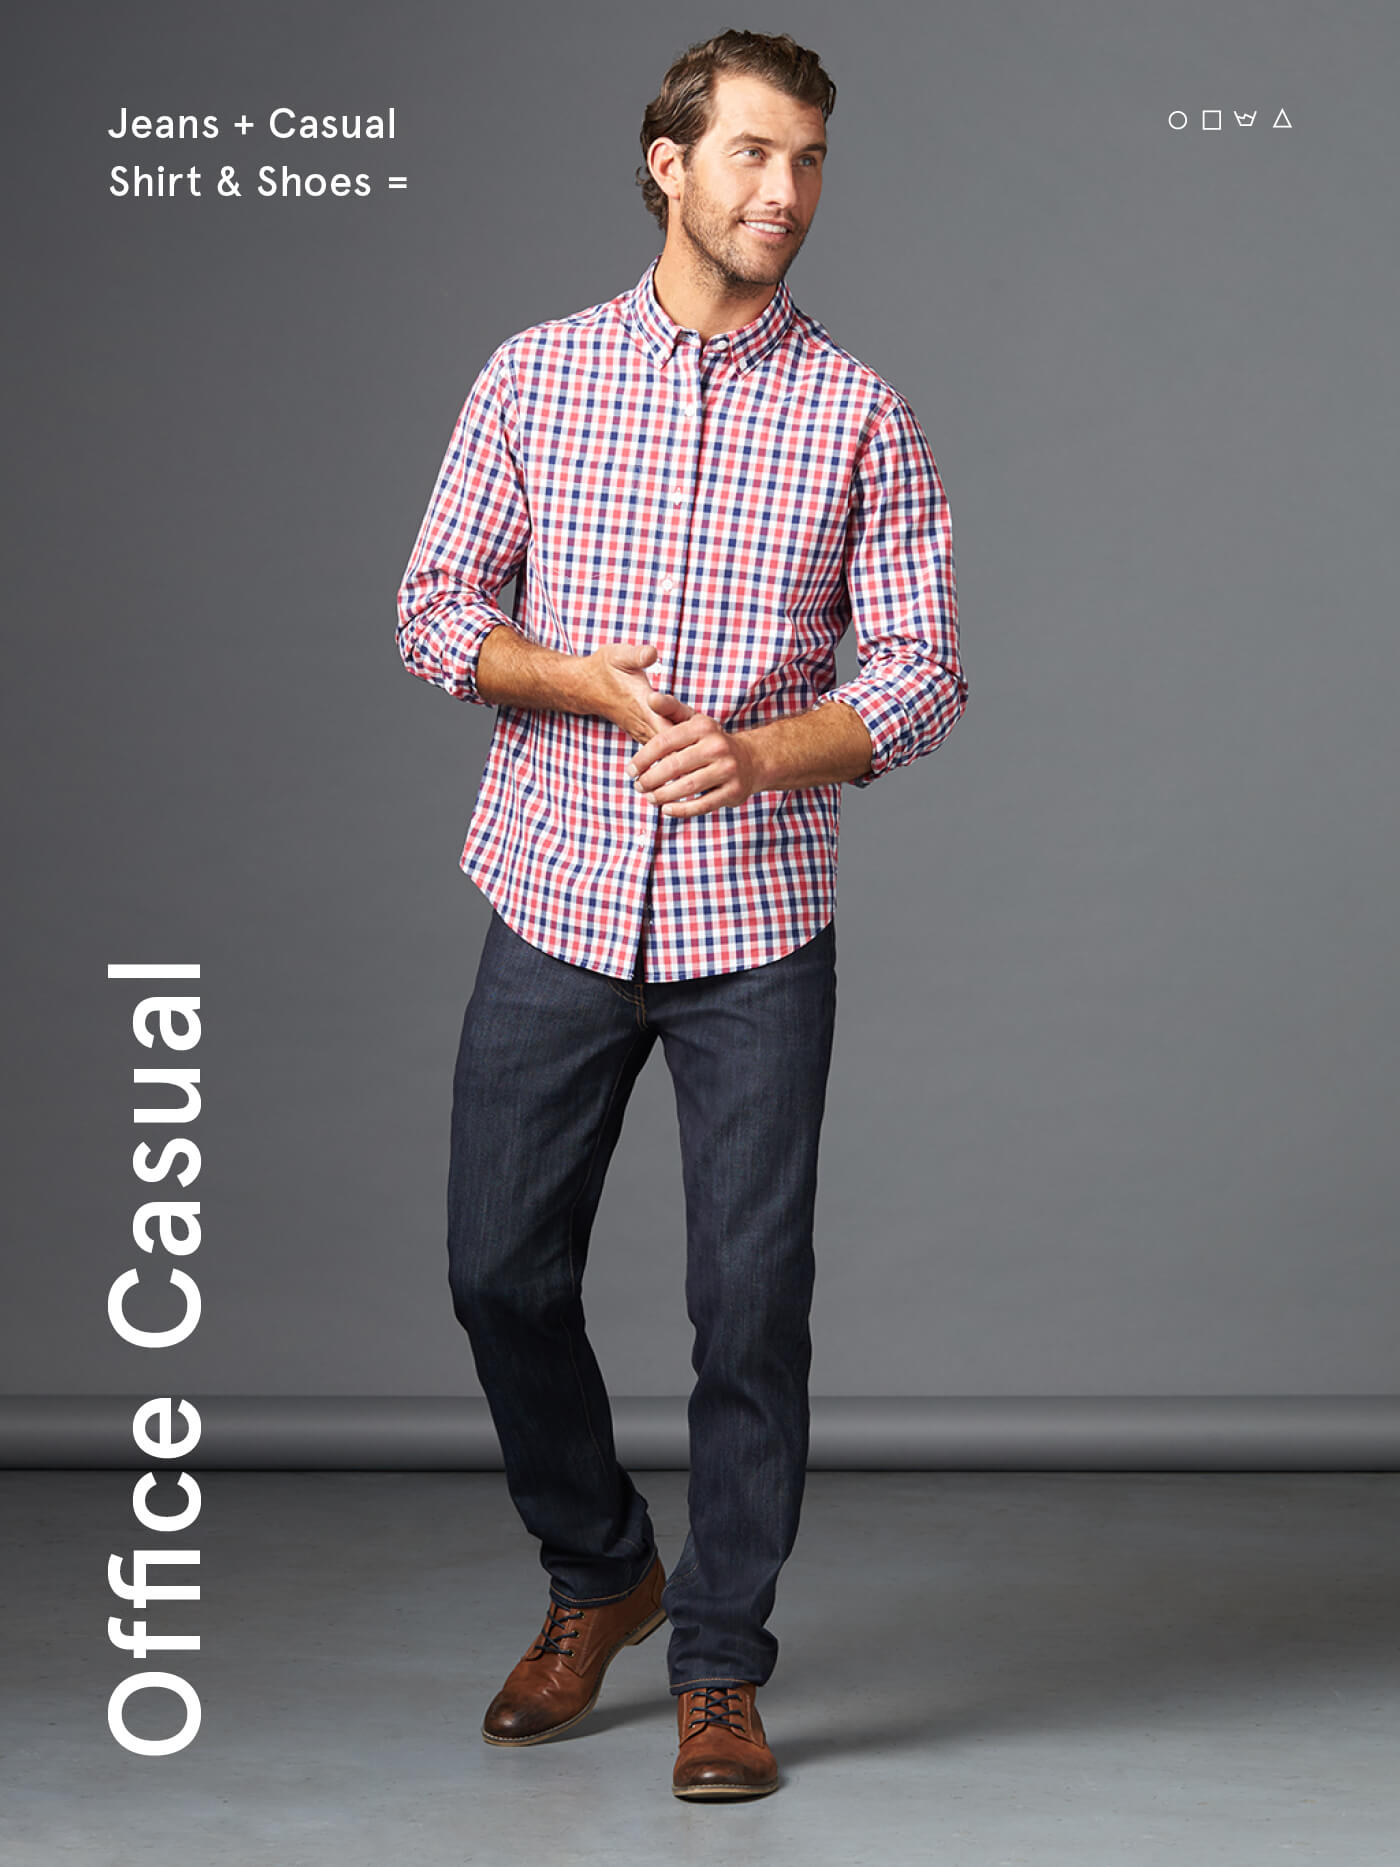 0872a30df5 what is office casual  jeans with a casual button down shirt and dress shoes